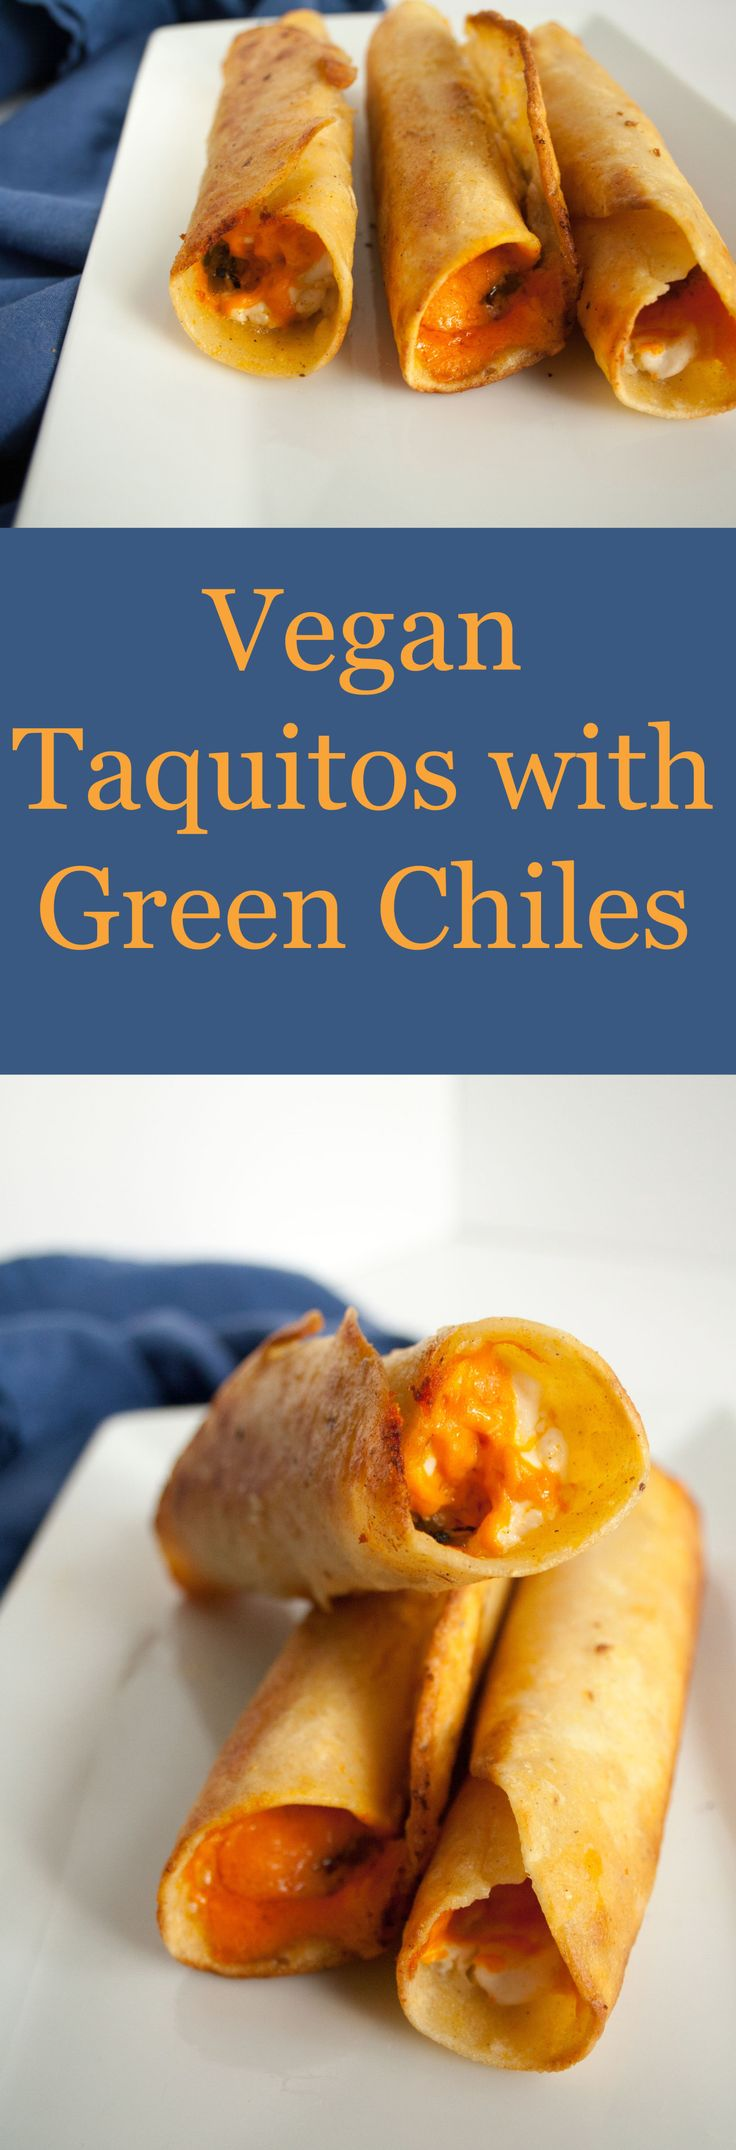 Vegan Taquitos with Green Chiles - These vegan taquitos are a great appetizer or meal. Serve with vegan sour cream and salsa.